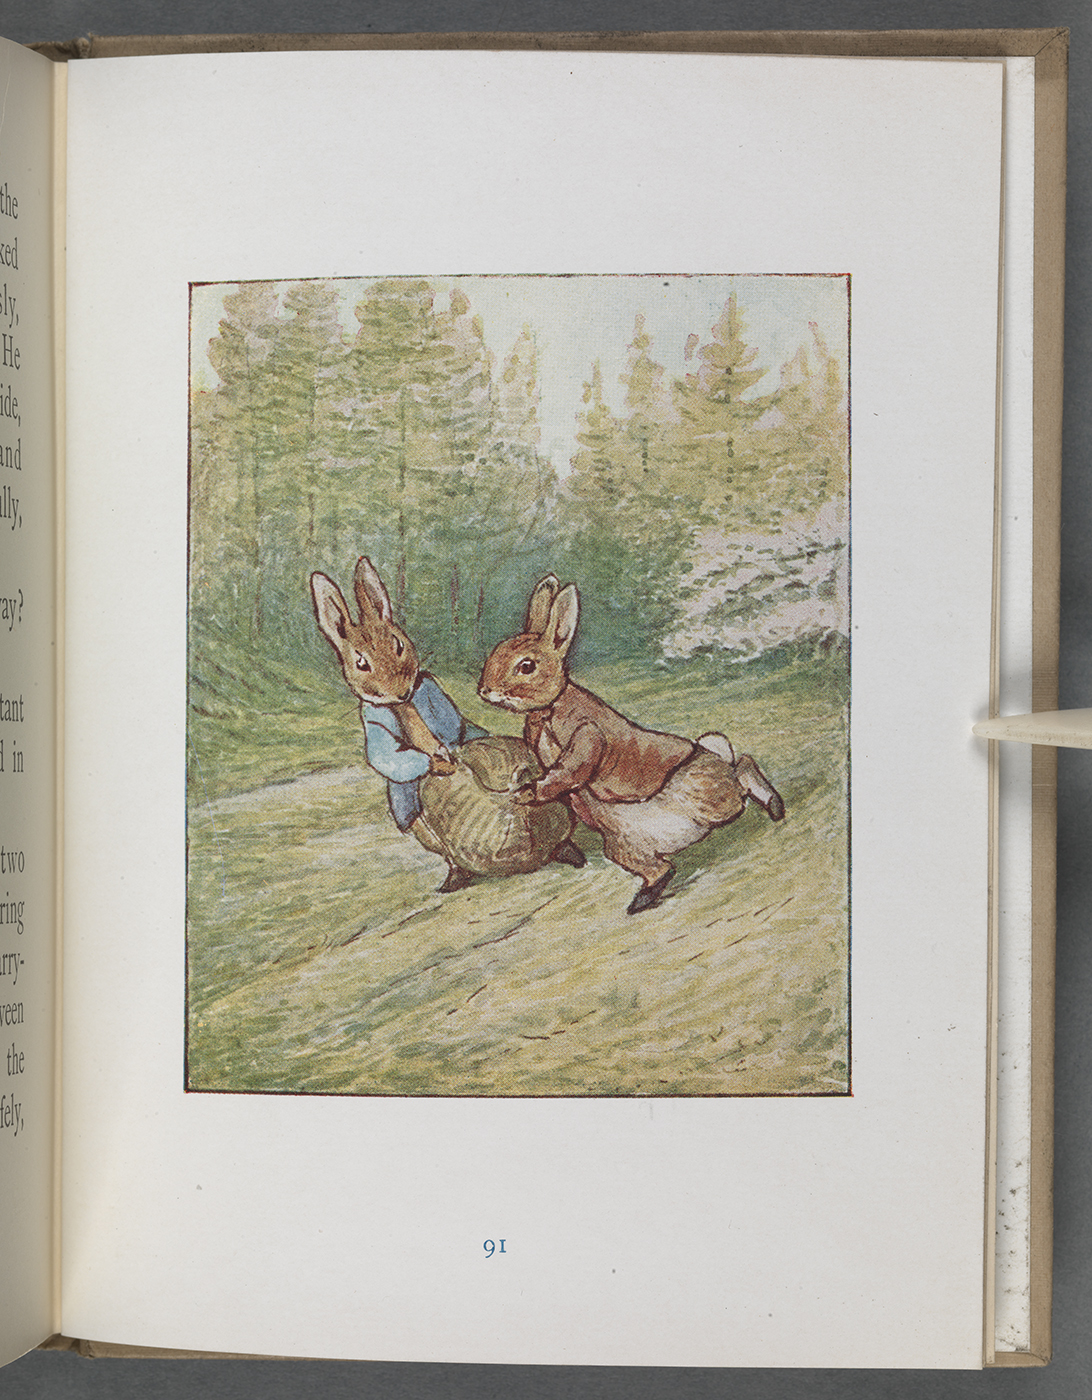 Potter's illustration of Benjamin Bunny and Peter Rabbit